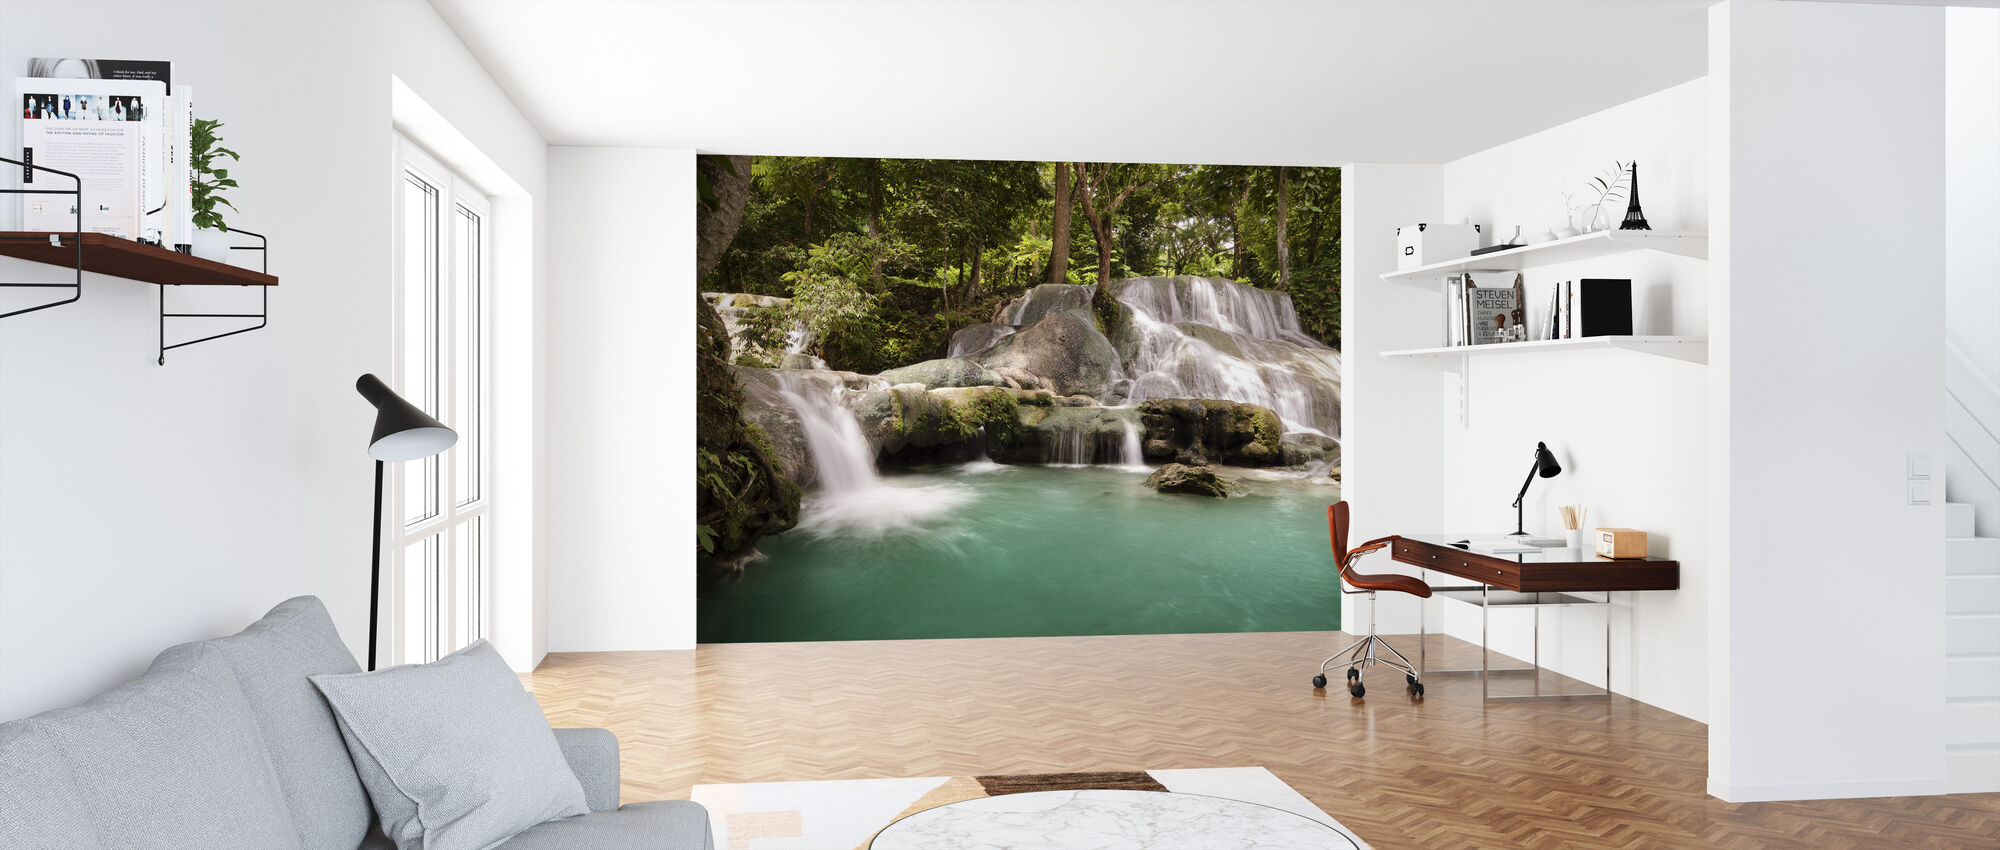 Panas Waterfalls III - Wallpaper - Office